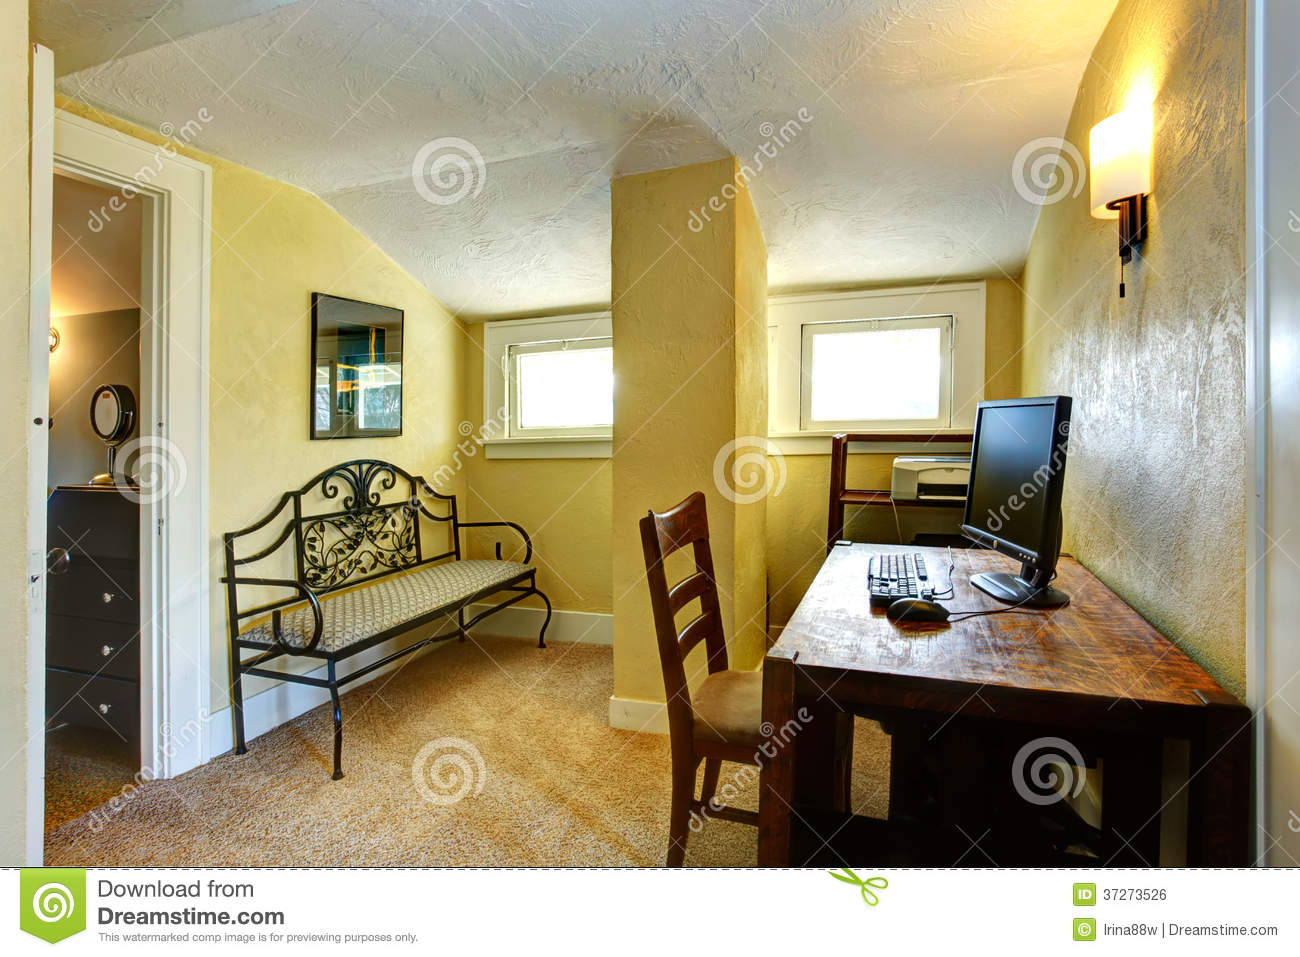 brown computer chair cheap 6 dining tables yellow study room with column and vaulted ceiling royalty free stock image - image: 37273526